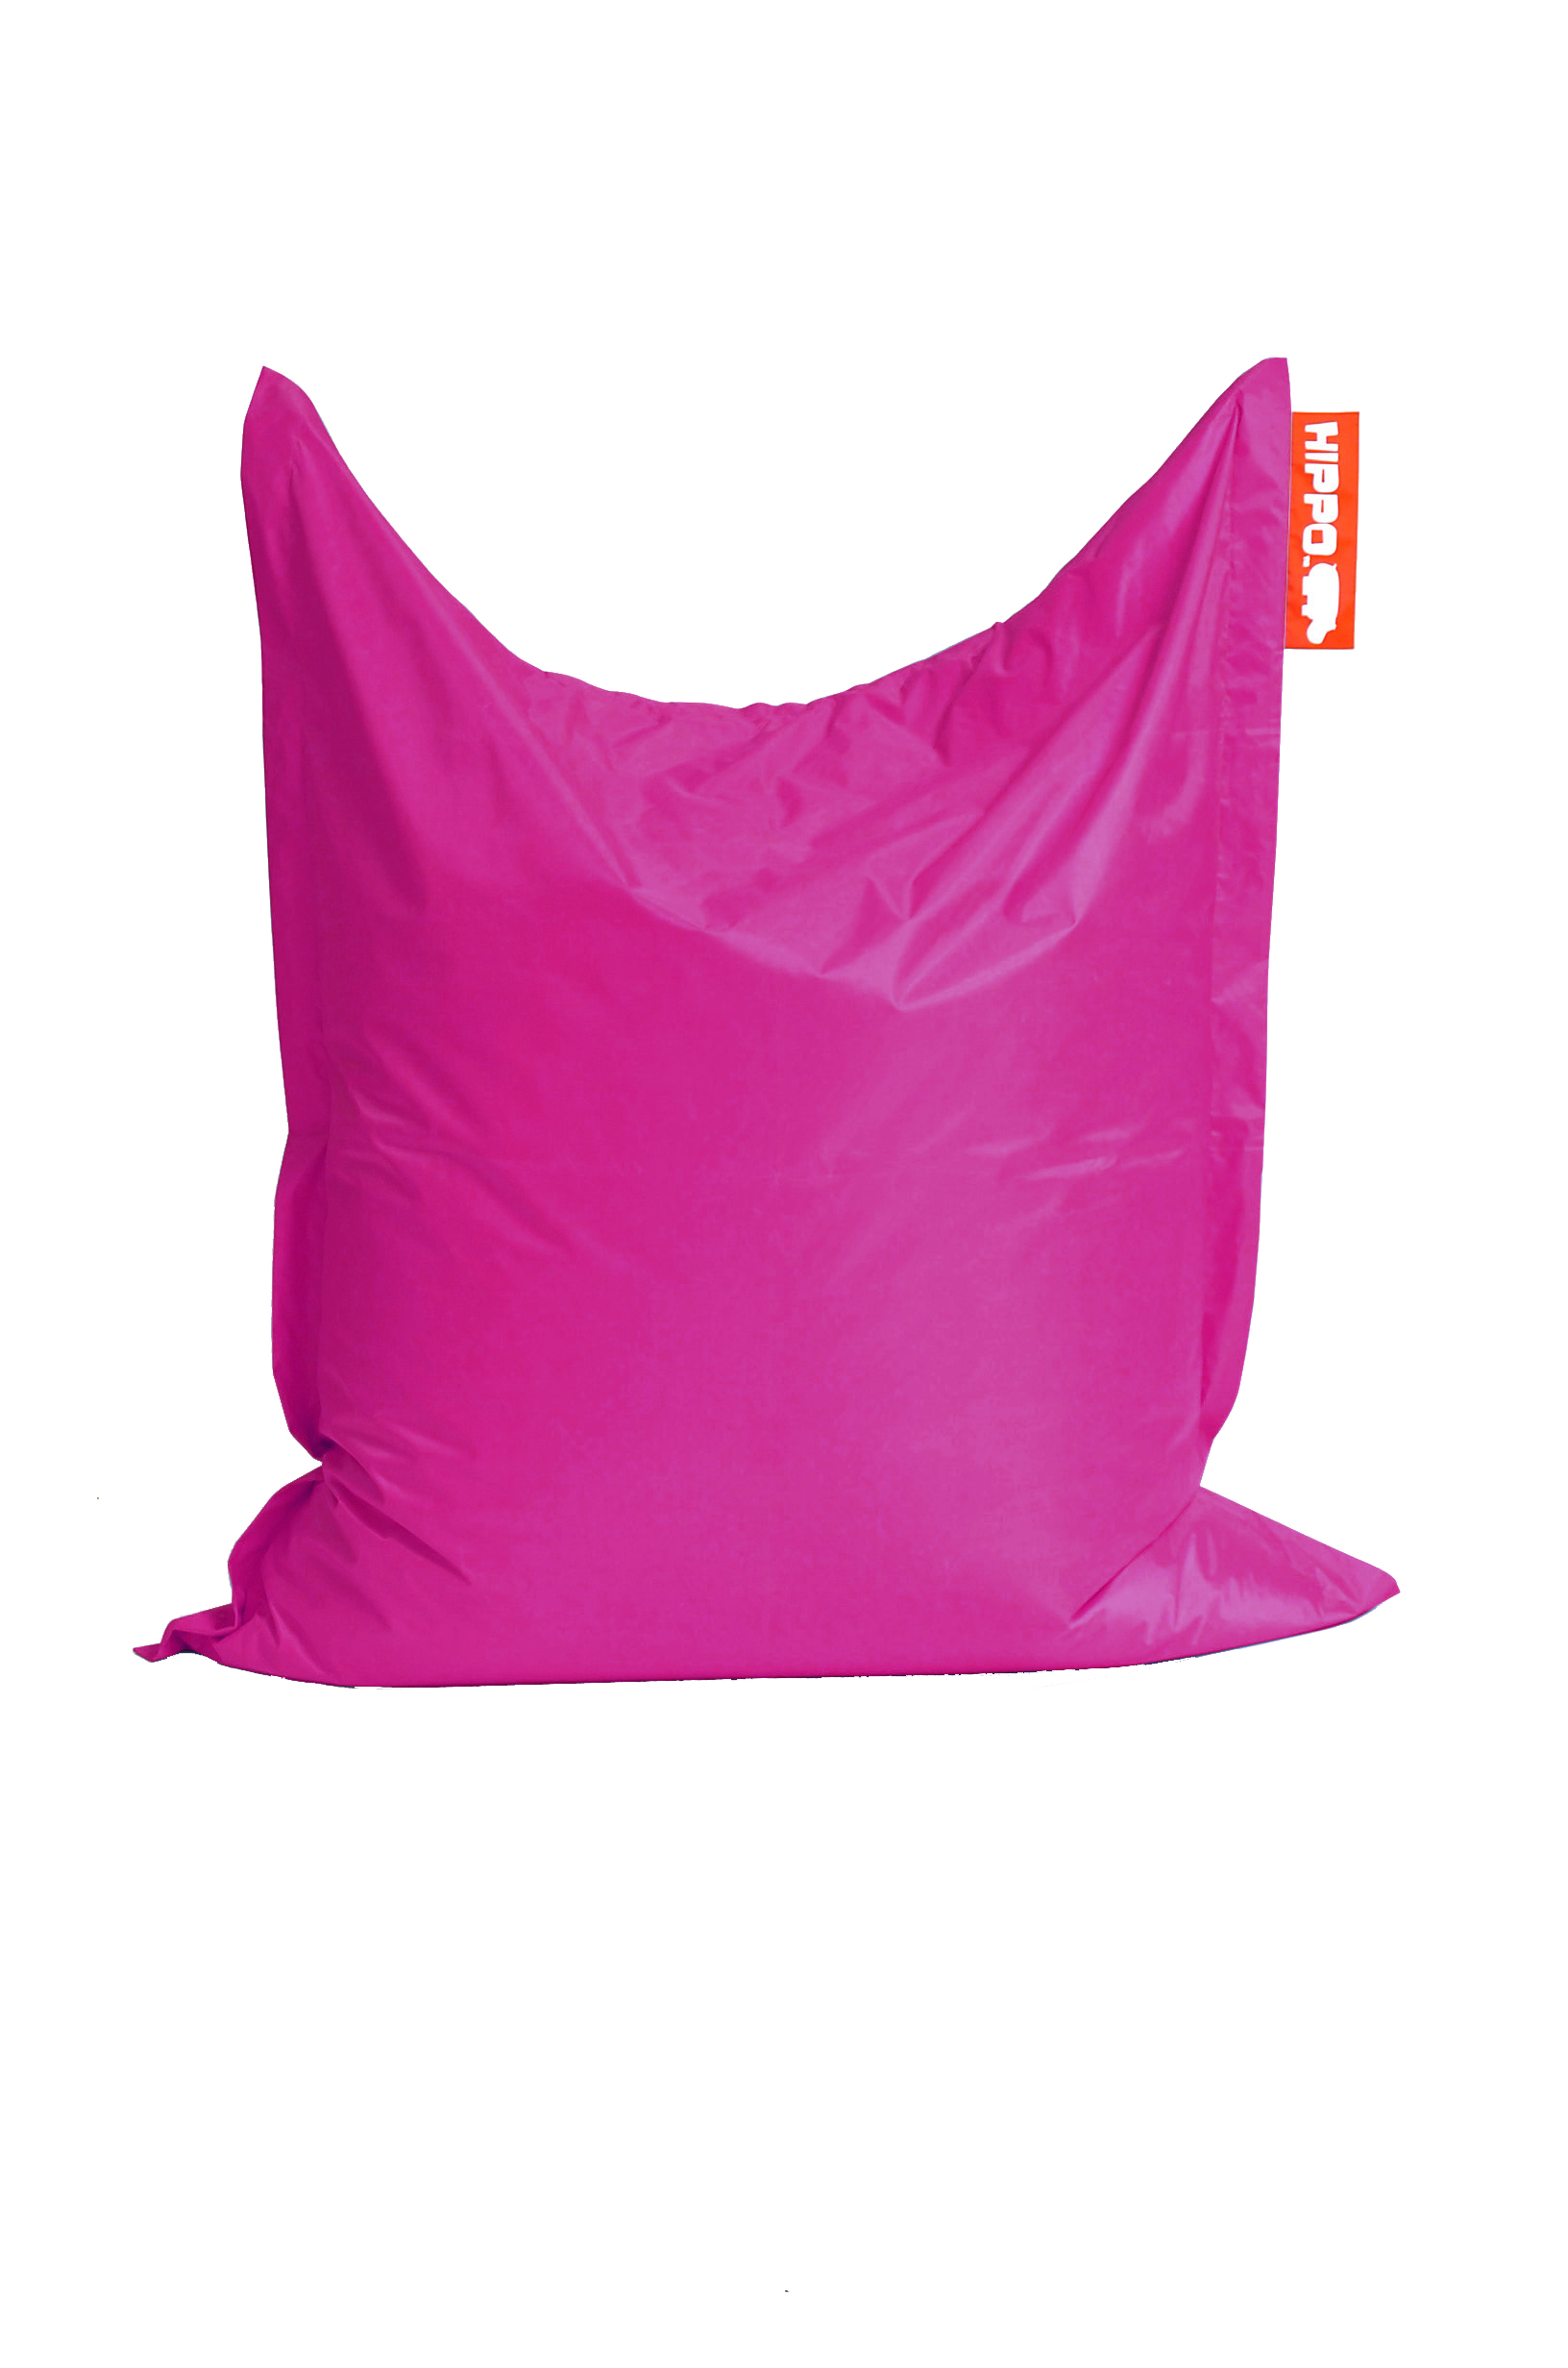 pink hippo xxl adult bean bag water resistant beanbag. Black Bedroom Furniture Sets. Home Design Ideas